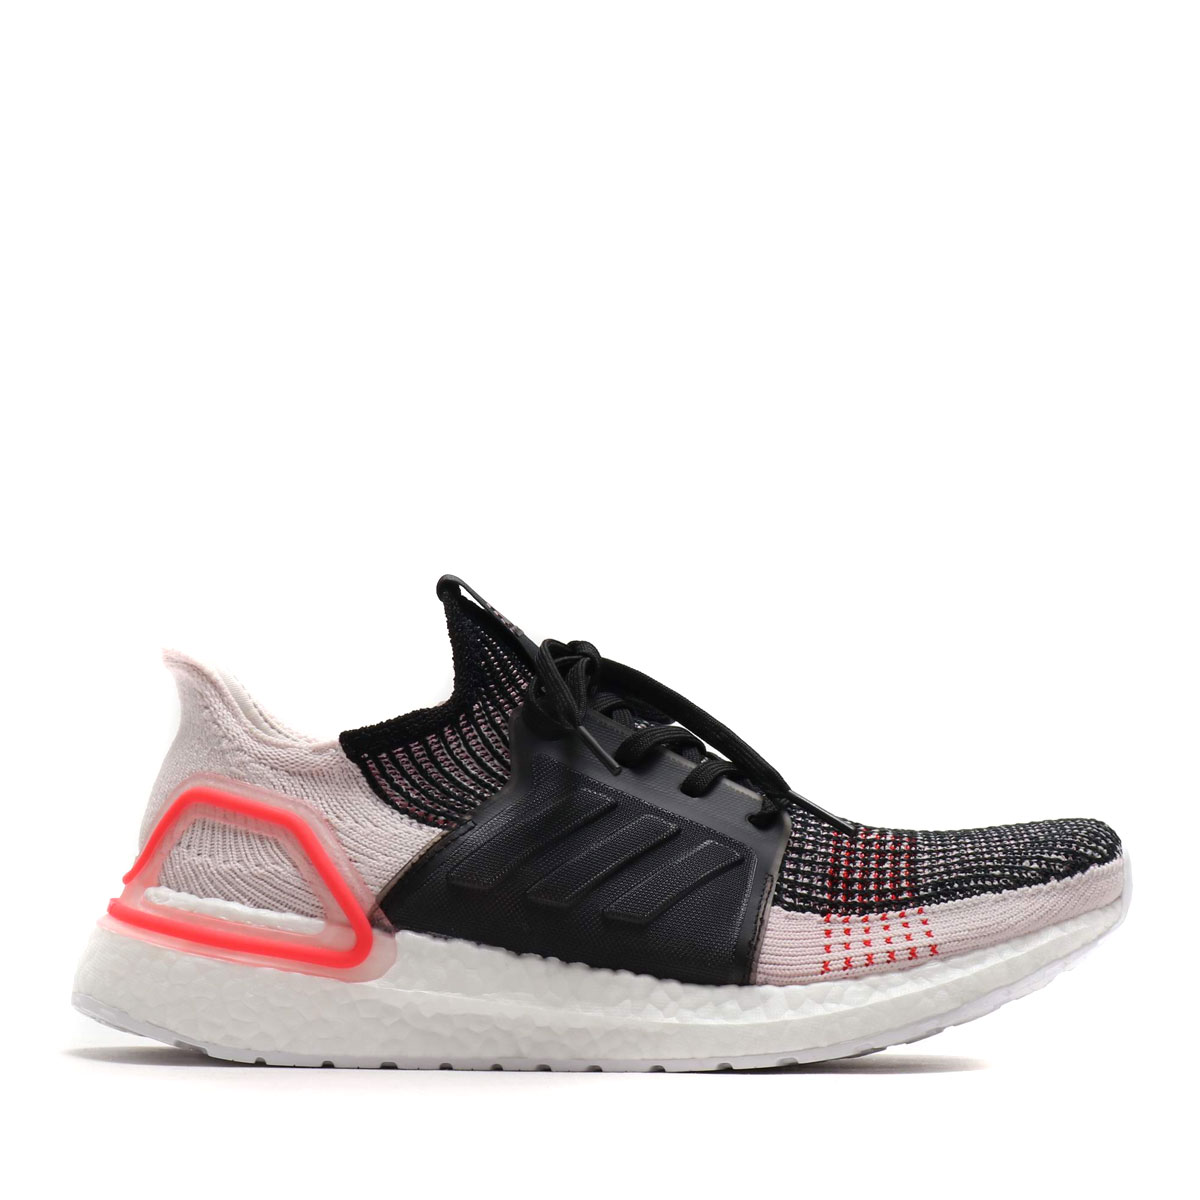 premium selection 738b6 7597b adidas UltraBOOST 19 (CORE BLACK/ORCHID TINT/ACTIVE RED) (Adidas ultra  boost 19)